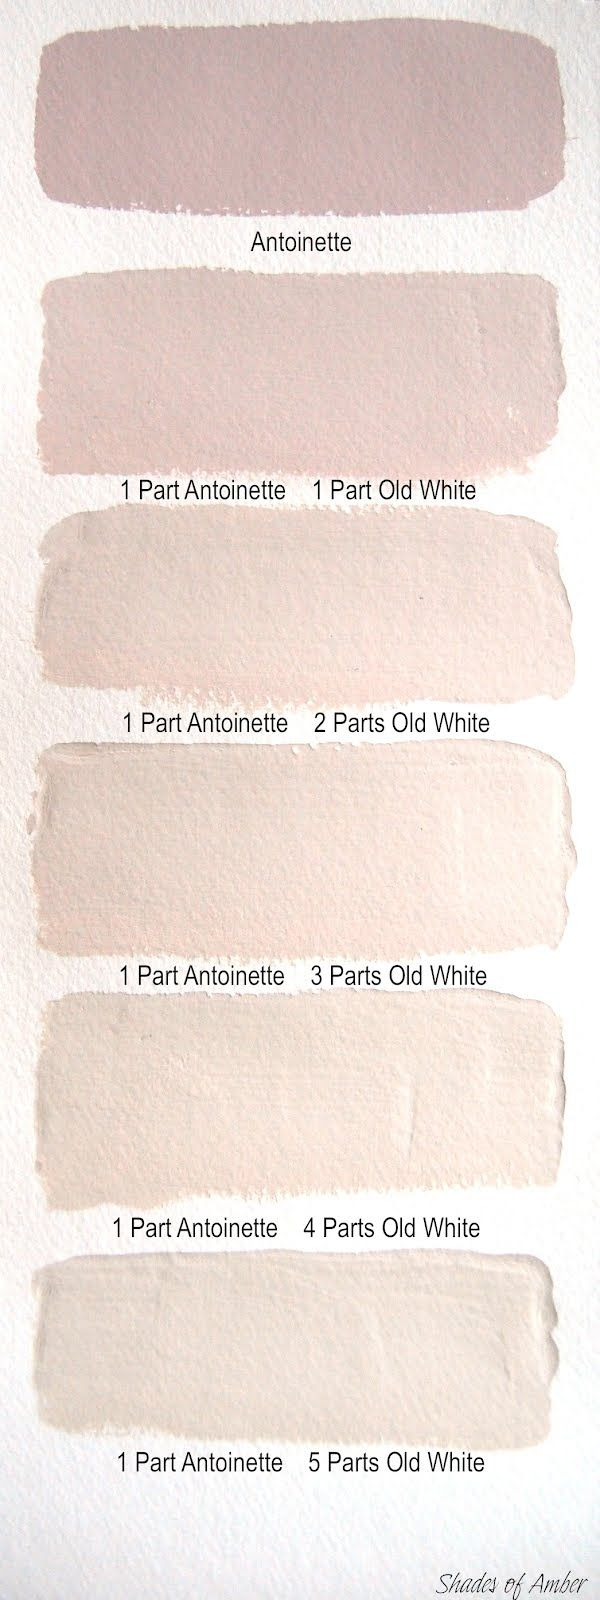 Shades of Amber: Chalk Paint Color Theory - Antoinette  #1000.4 Antoinette Chalk Paint      Old fashioned roses and the colour of old plaster.   This is a soft pale pink with a hint of brown in it so the pink is not too sweet.